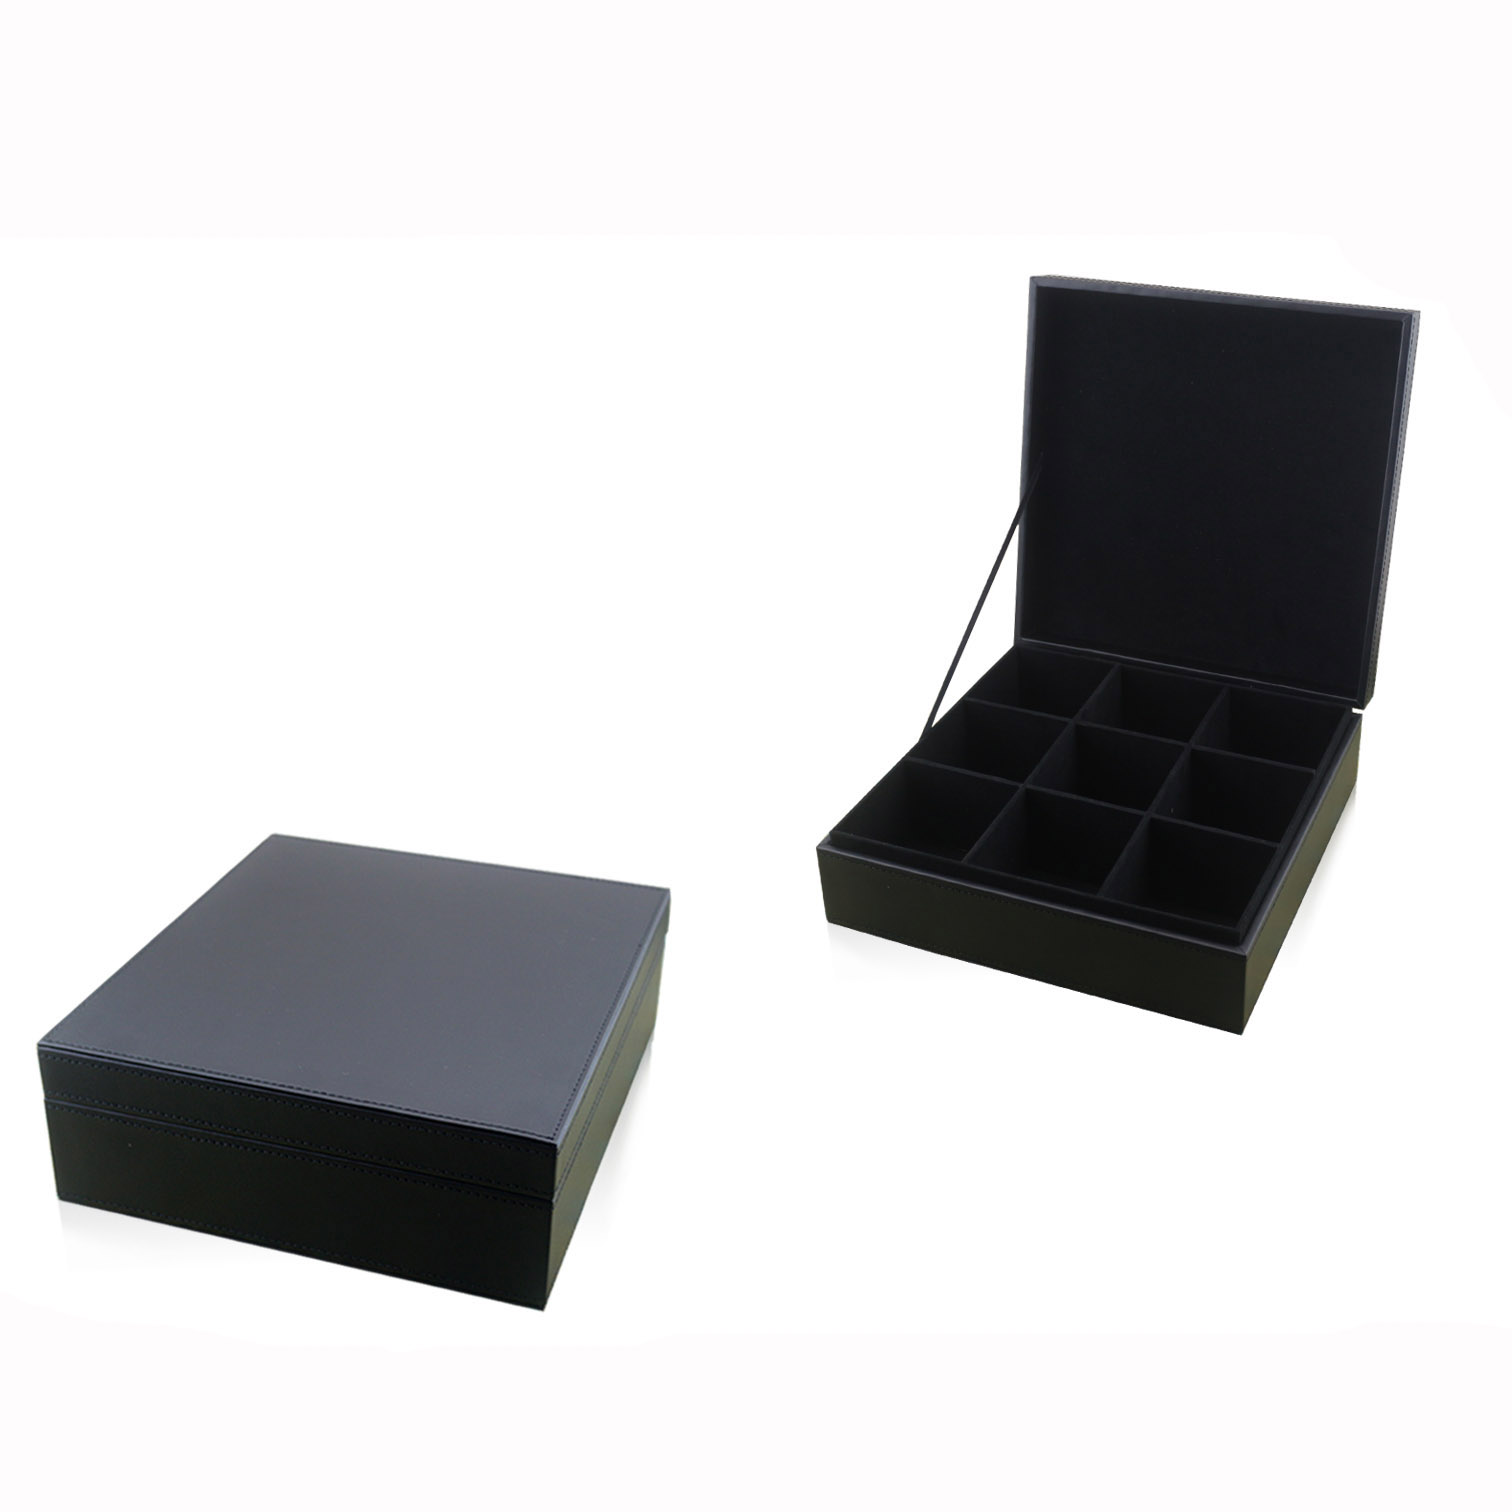 Chinese stylish black flip cover artistic tea box with compartment